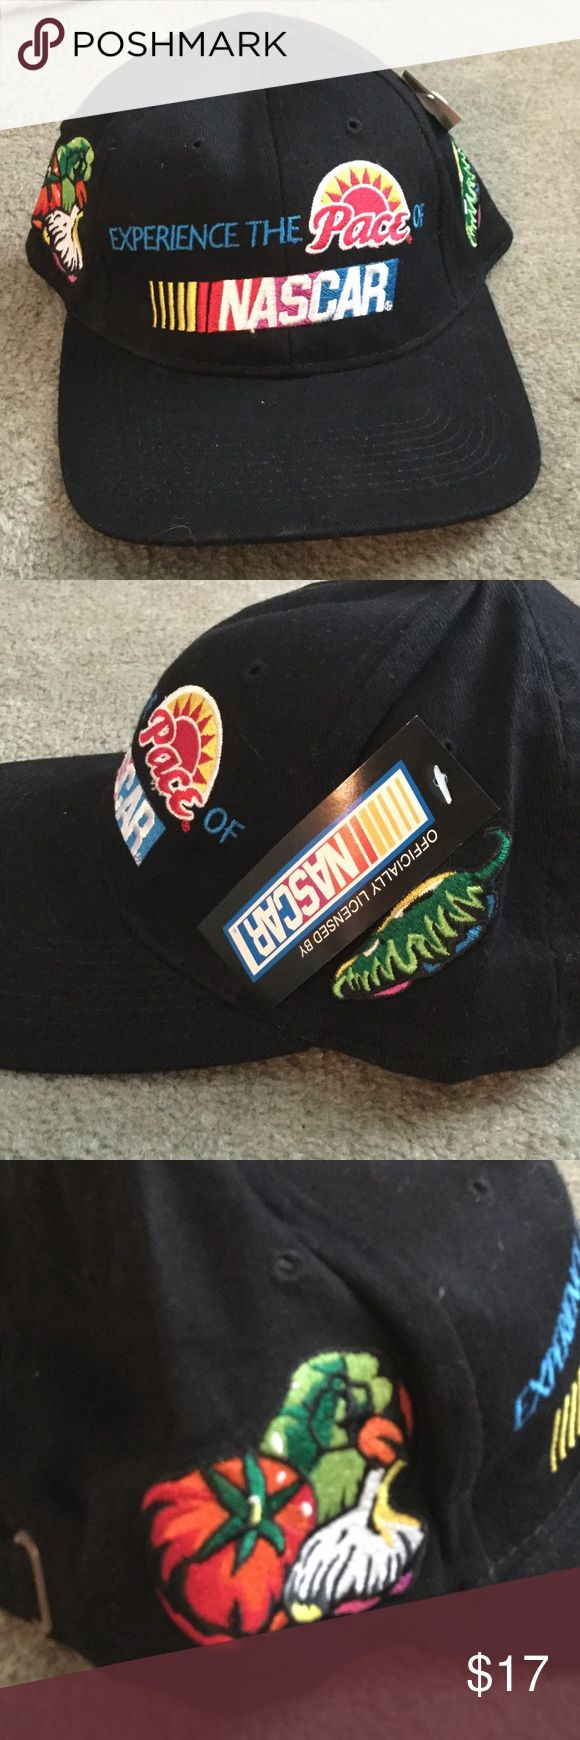 Men's NASCAR Hat Good condition. Brand-new with tags. NASCAR Accessories Hats